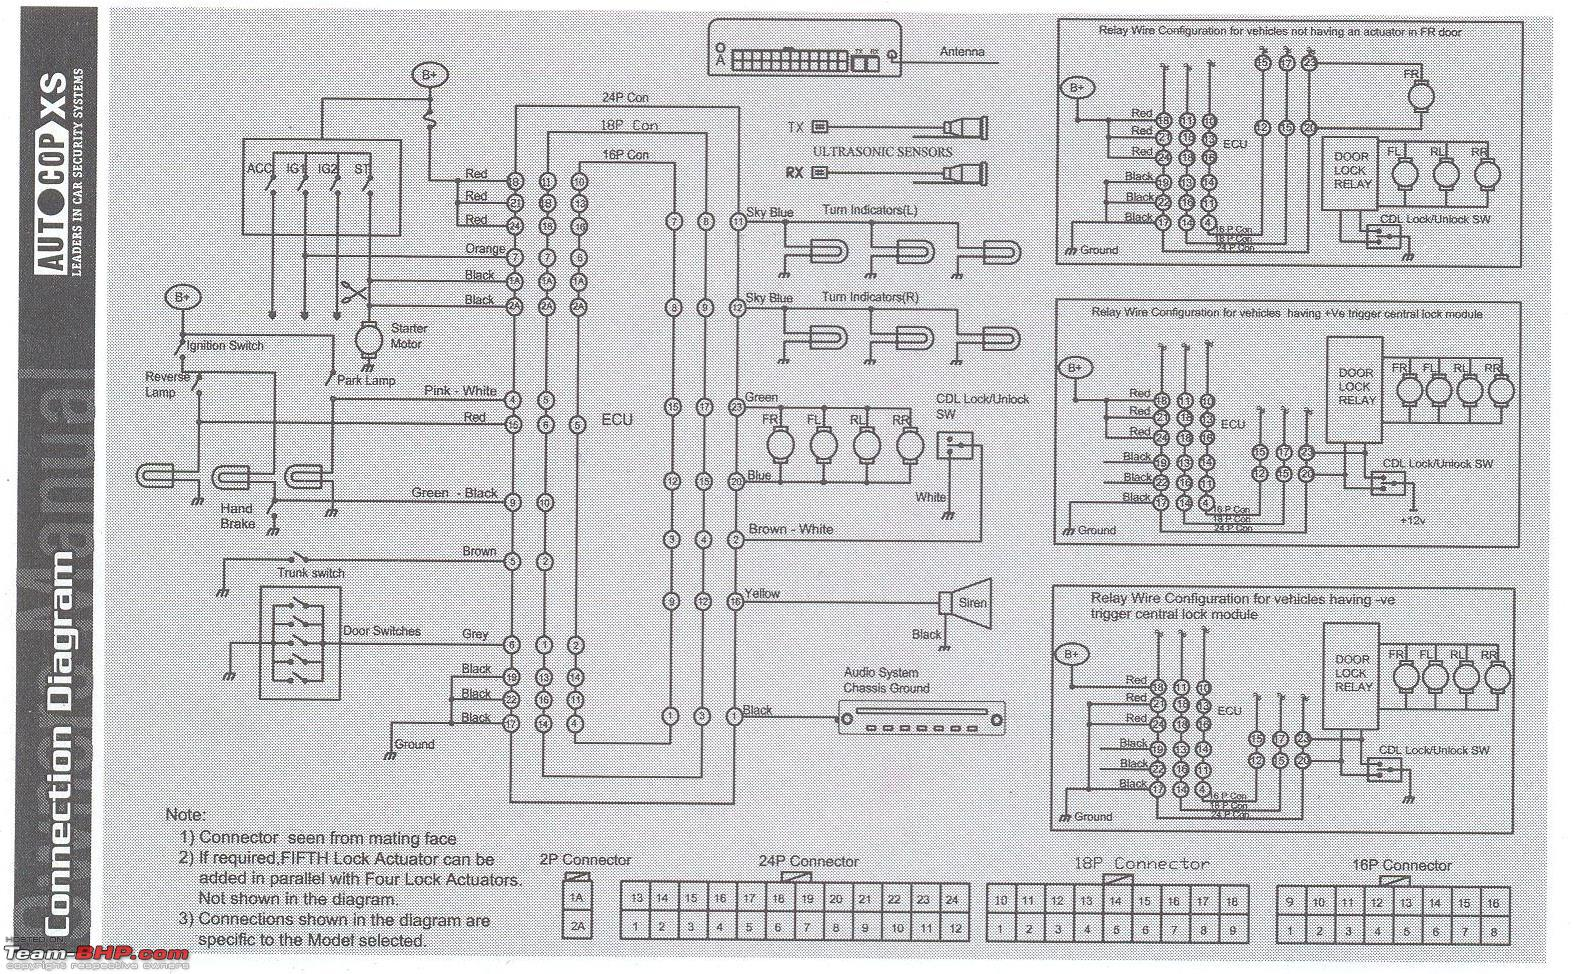 hight resolution of autocop xs manual wiring diagram image 5 jpg